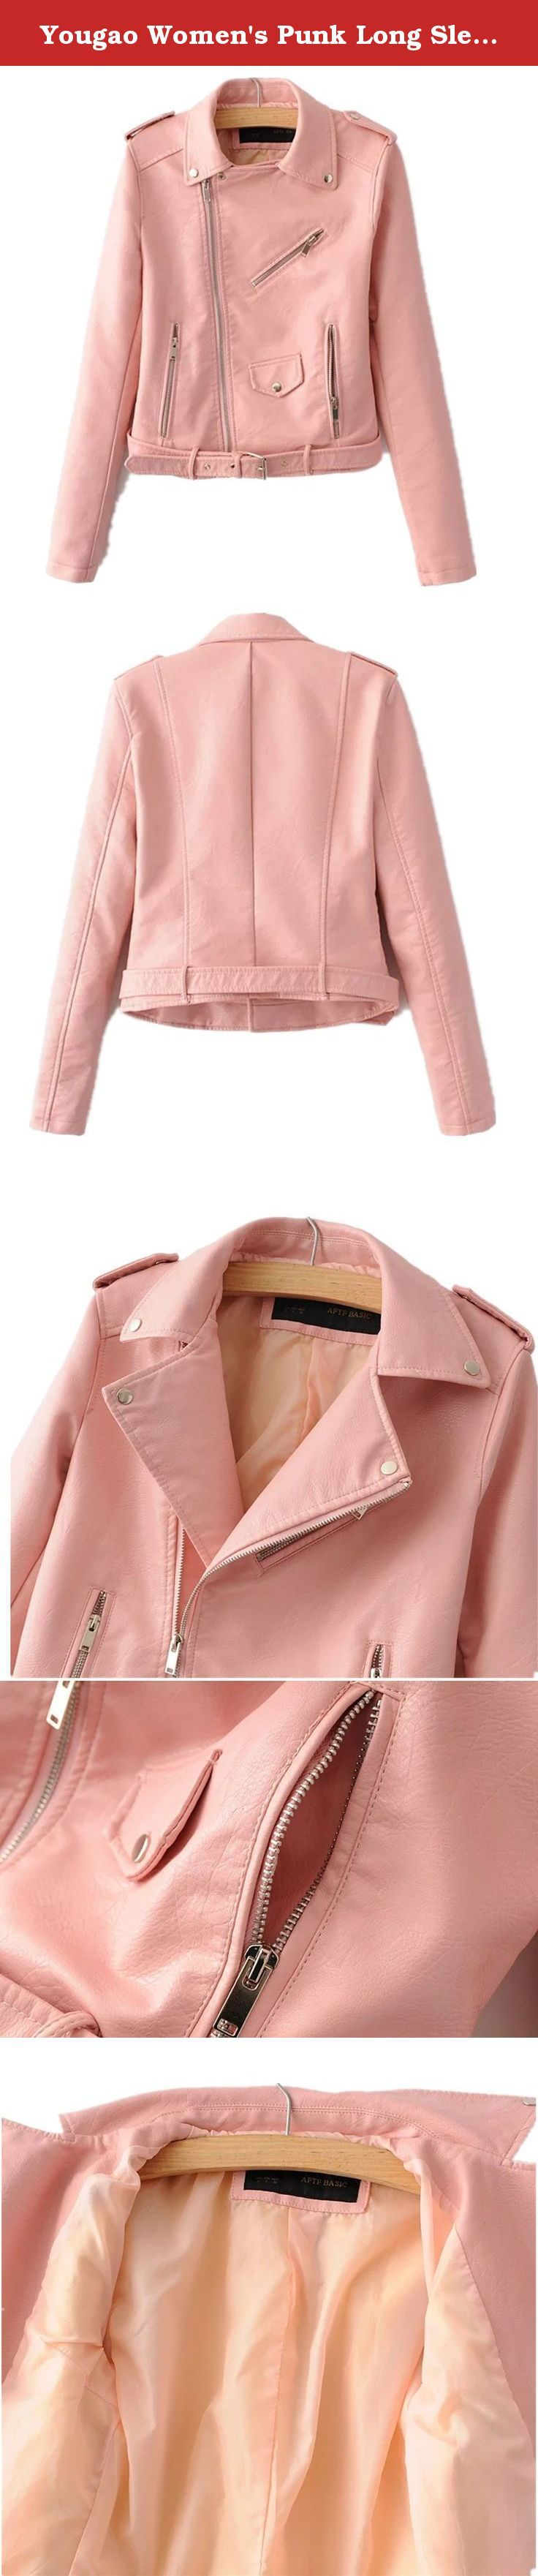 Yougao Women's Punk Long Sleeve PU Leather Coat Zip up Short Motocycle Jacket Pink M. Yougao Women's Punk Long Sleeve PU Leather Coat Zip up Short Motocycle Jacket Note: 1:Hand-made and Gorgeous design makes the coat appropriate for working, travel,daily life or other occasions. High quality PU gives you comfortable feeling! 2:The real color of the item may be slightly different from the pictures shown on website caused by many factors such as brightness of your monitor and light…